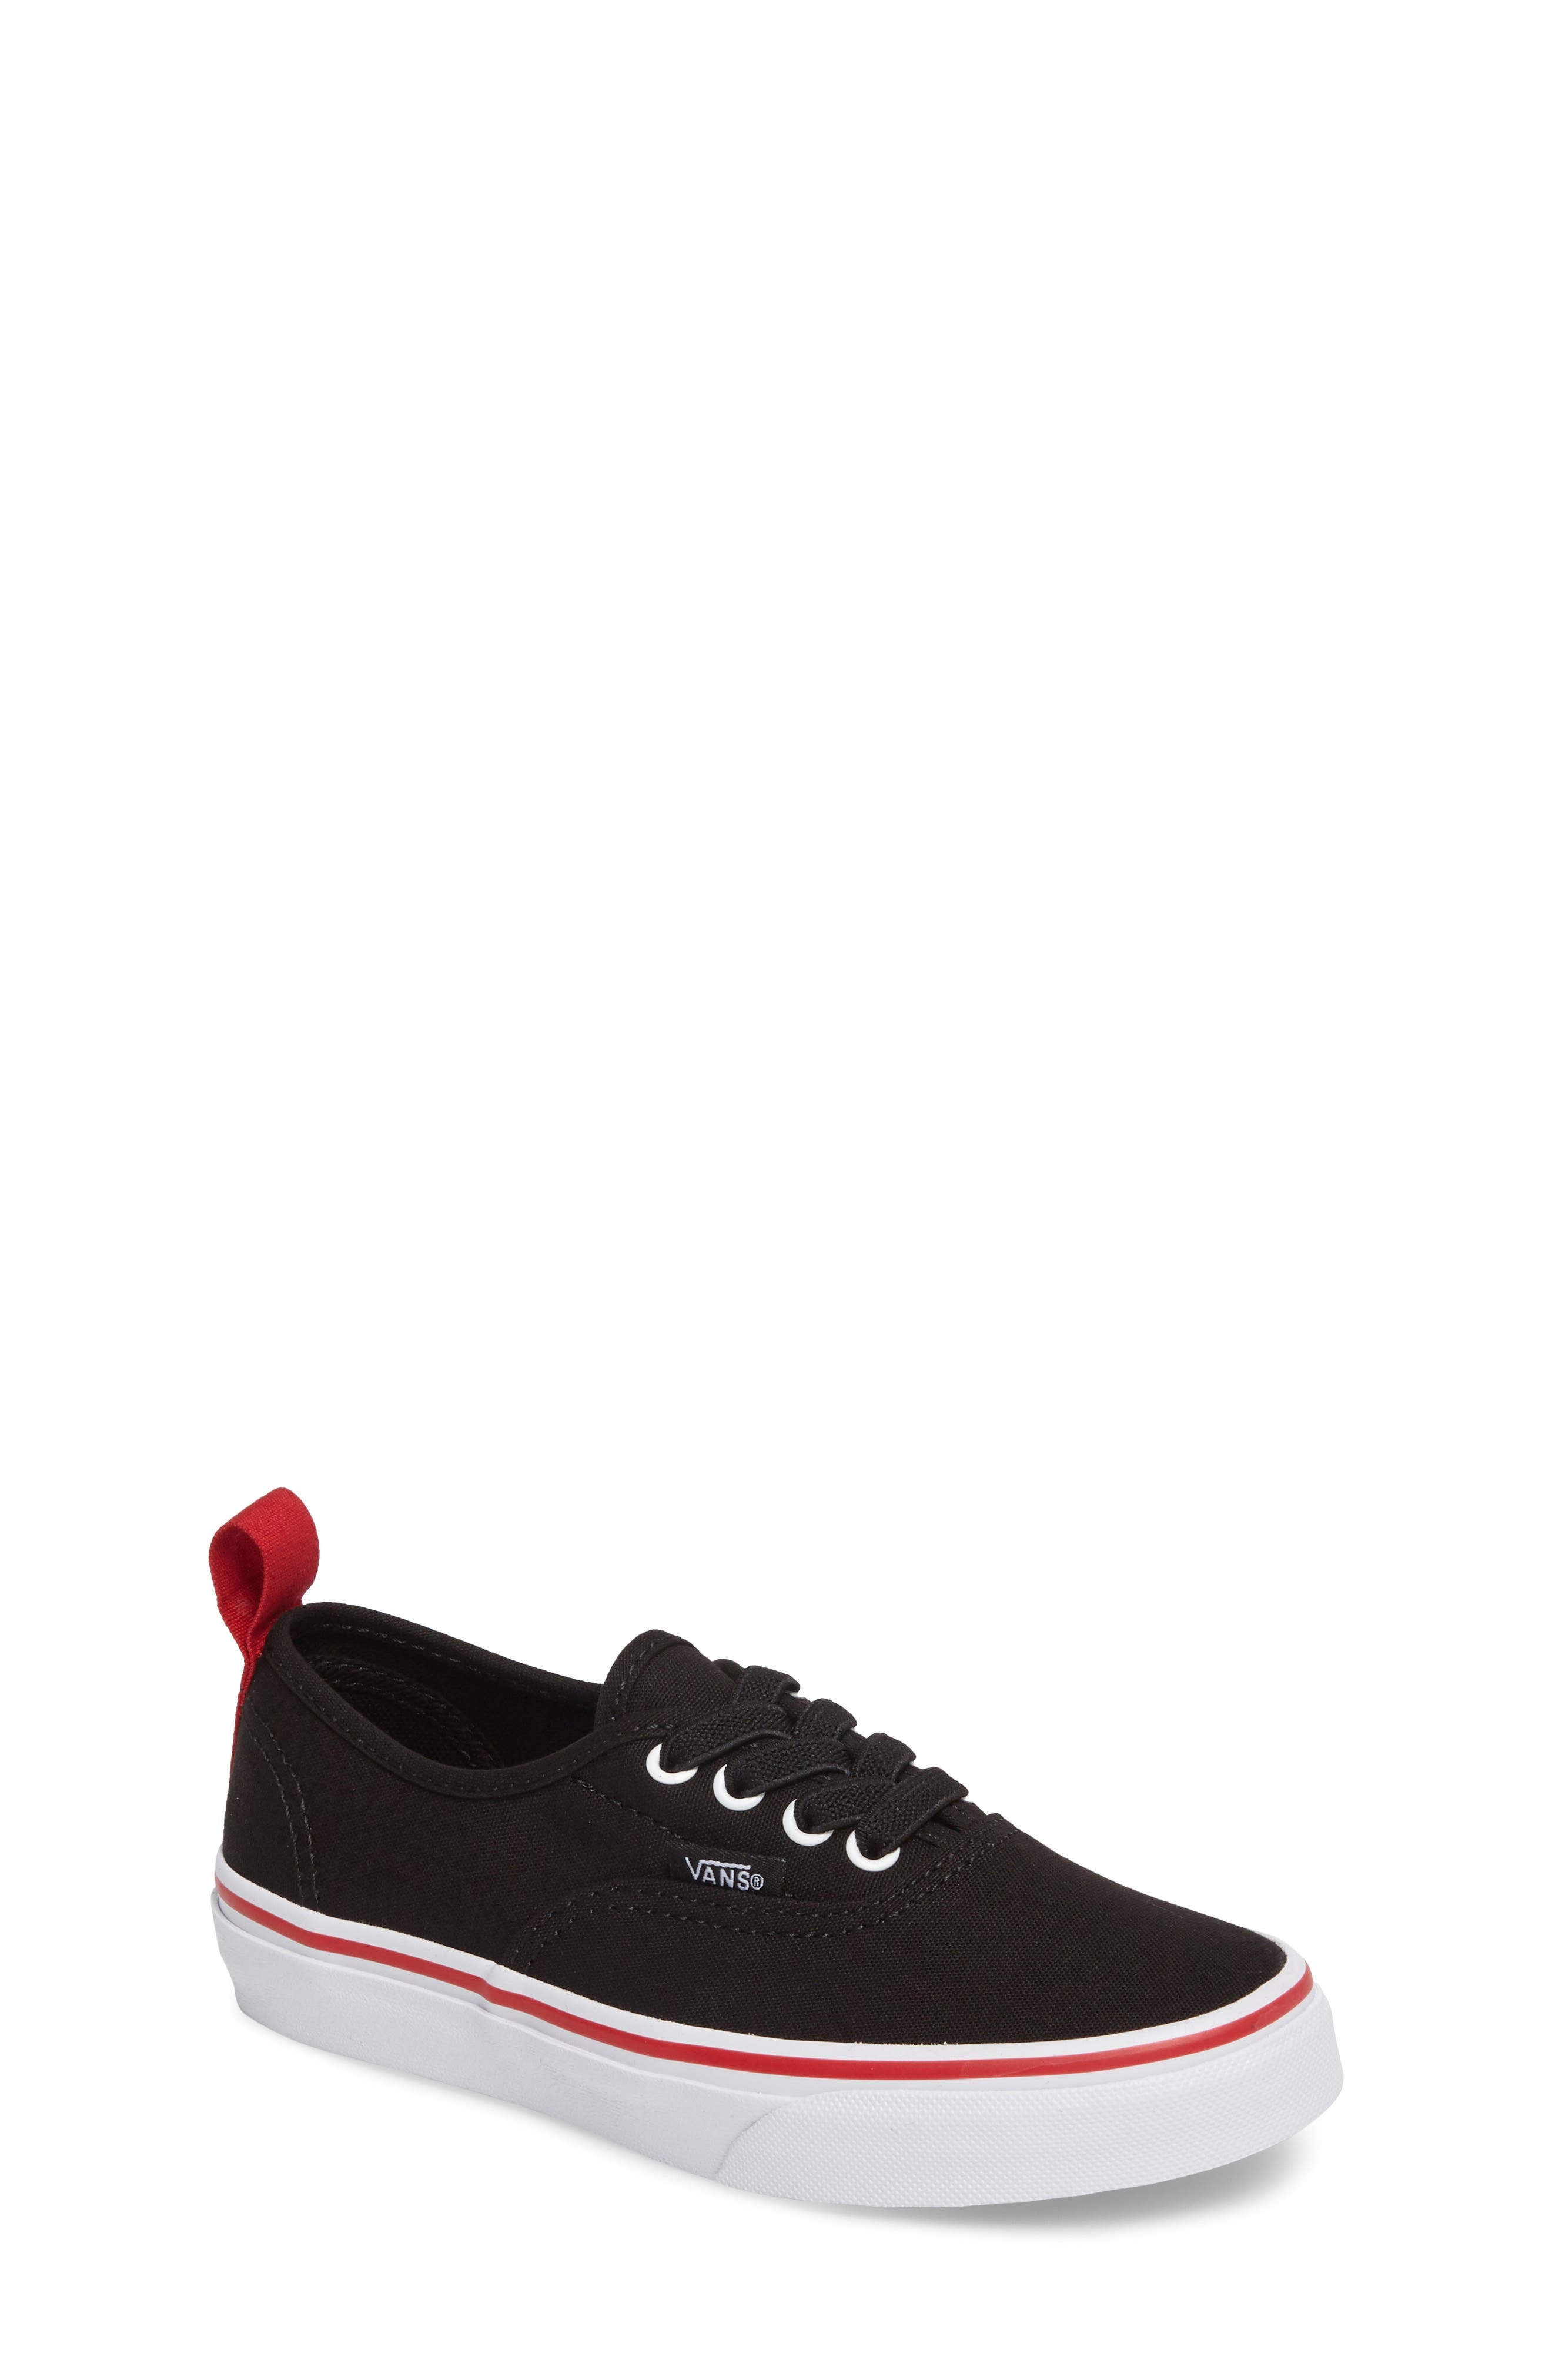 Vans Authentic Elastic Lace Sneaker (Baby, Walker, Toddler, Little Kid & Big Kid)